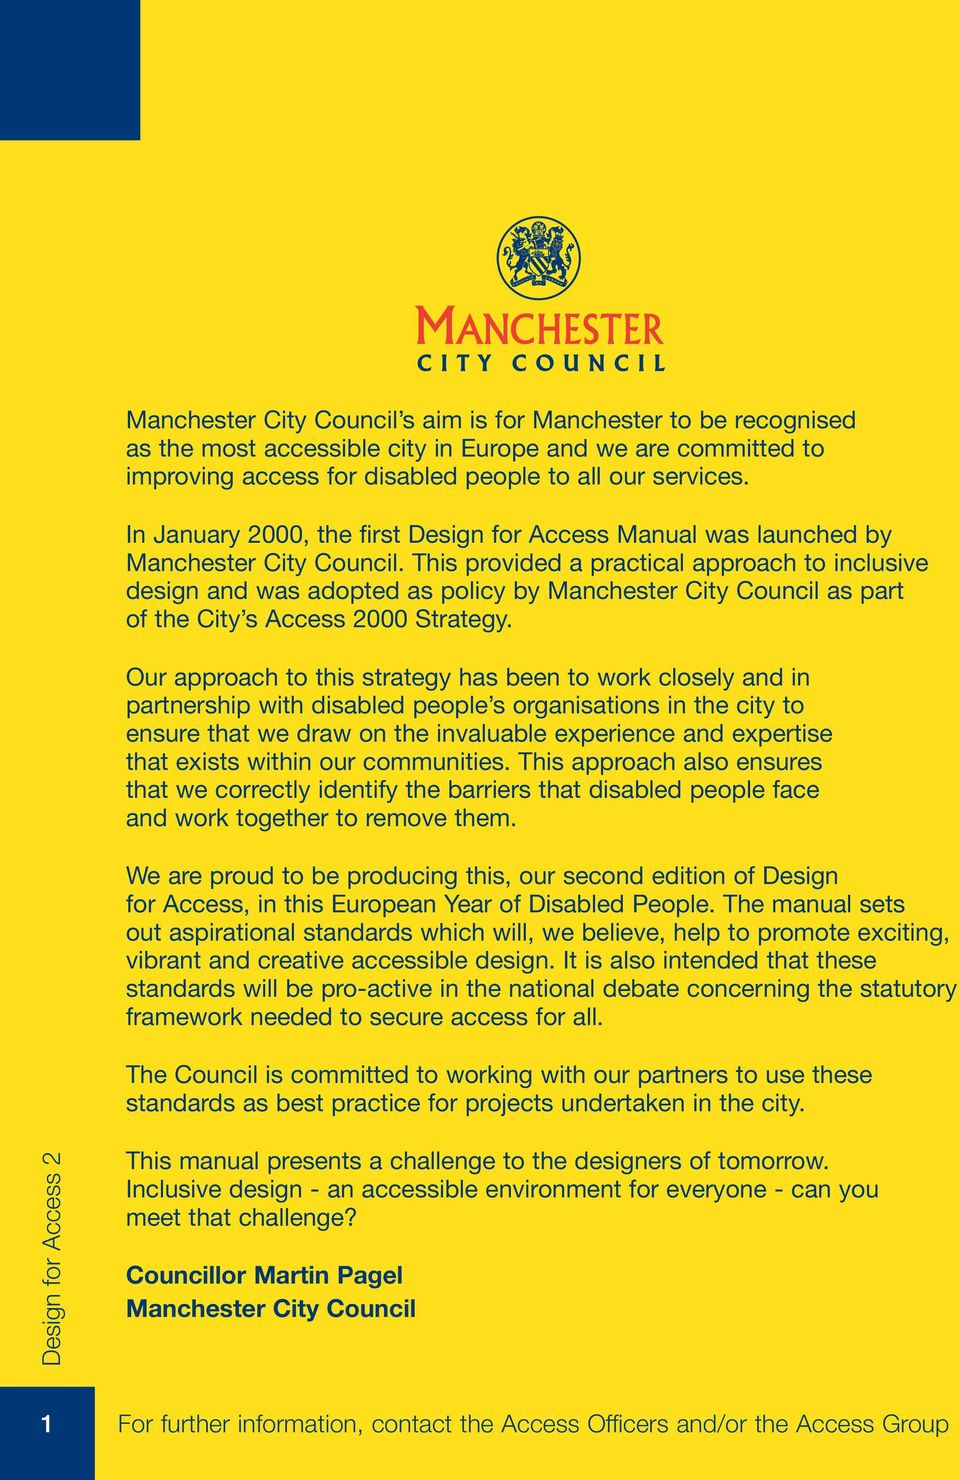 This provided a practical approach to inclusive design and was adopted as policy by Manchester City Council as part of the City s Access 2000 Strategy.